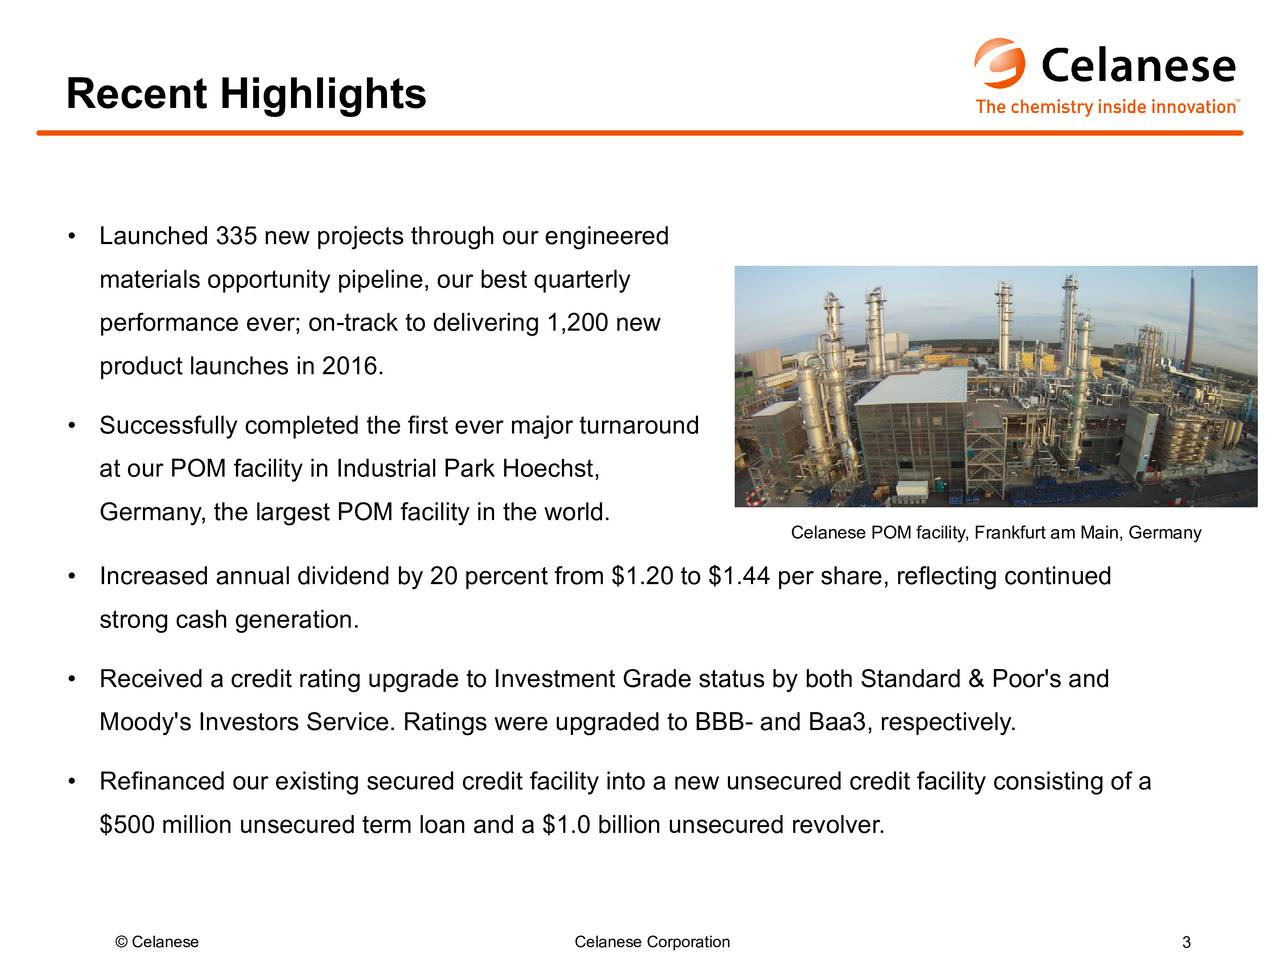 Launched 335 new projects through our engineered materials opportunity pipeline, our best quarterly performance ever; on-track to delivering 1,200 new product launches in 2016. Successfully completed the first ever major turnaround at our POM facility in Industrial Park Hoechst, Germany, the largest POM facility in the world. Celanese POM facility, Frankfurt am Main, Germany Increased annual dividend by 20 percent from $1.20 to $1.44 per share, reflecting continued strong cash generation. Received a credit rating upgrade to Investment Grade status by both Standard & Poor's and Moody's Investors Service. Ratings were upgraded to BBB- and Baa3, respectively. Refinanced our existing secured credit facility into a new unsecured credit facility consisting of a $500 million unsecured term loan and a $1.0 billion unsecured revolver. Celanese Celanese Corporation 3